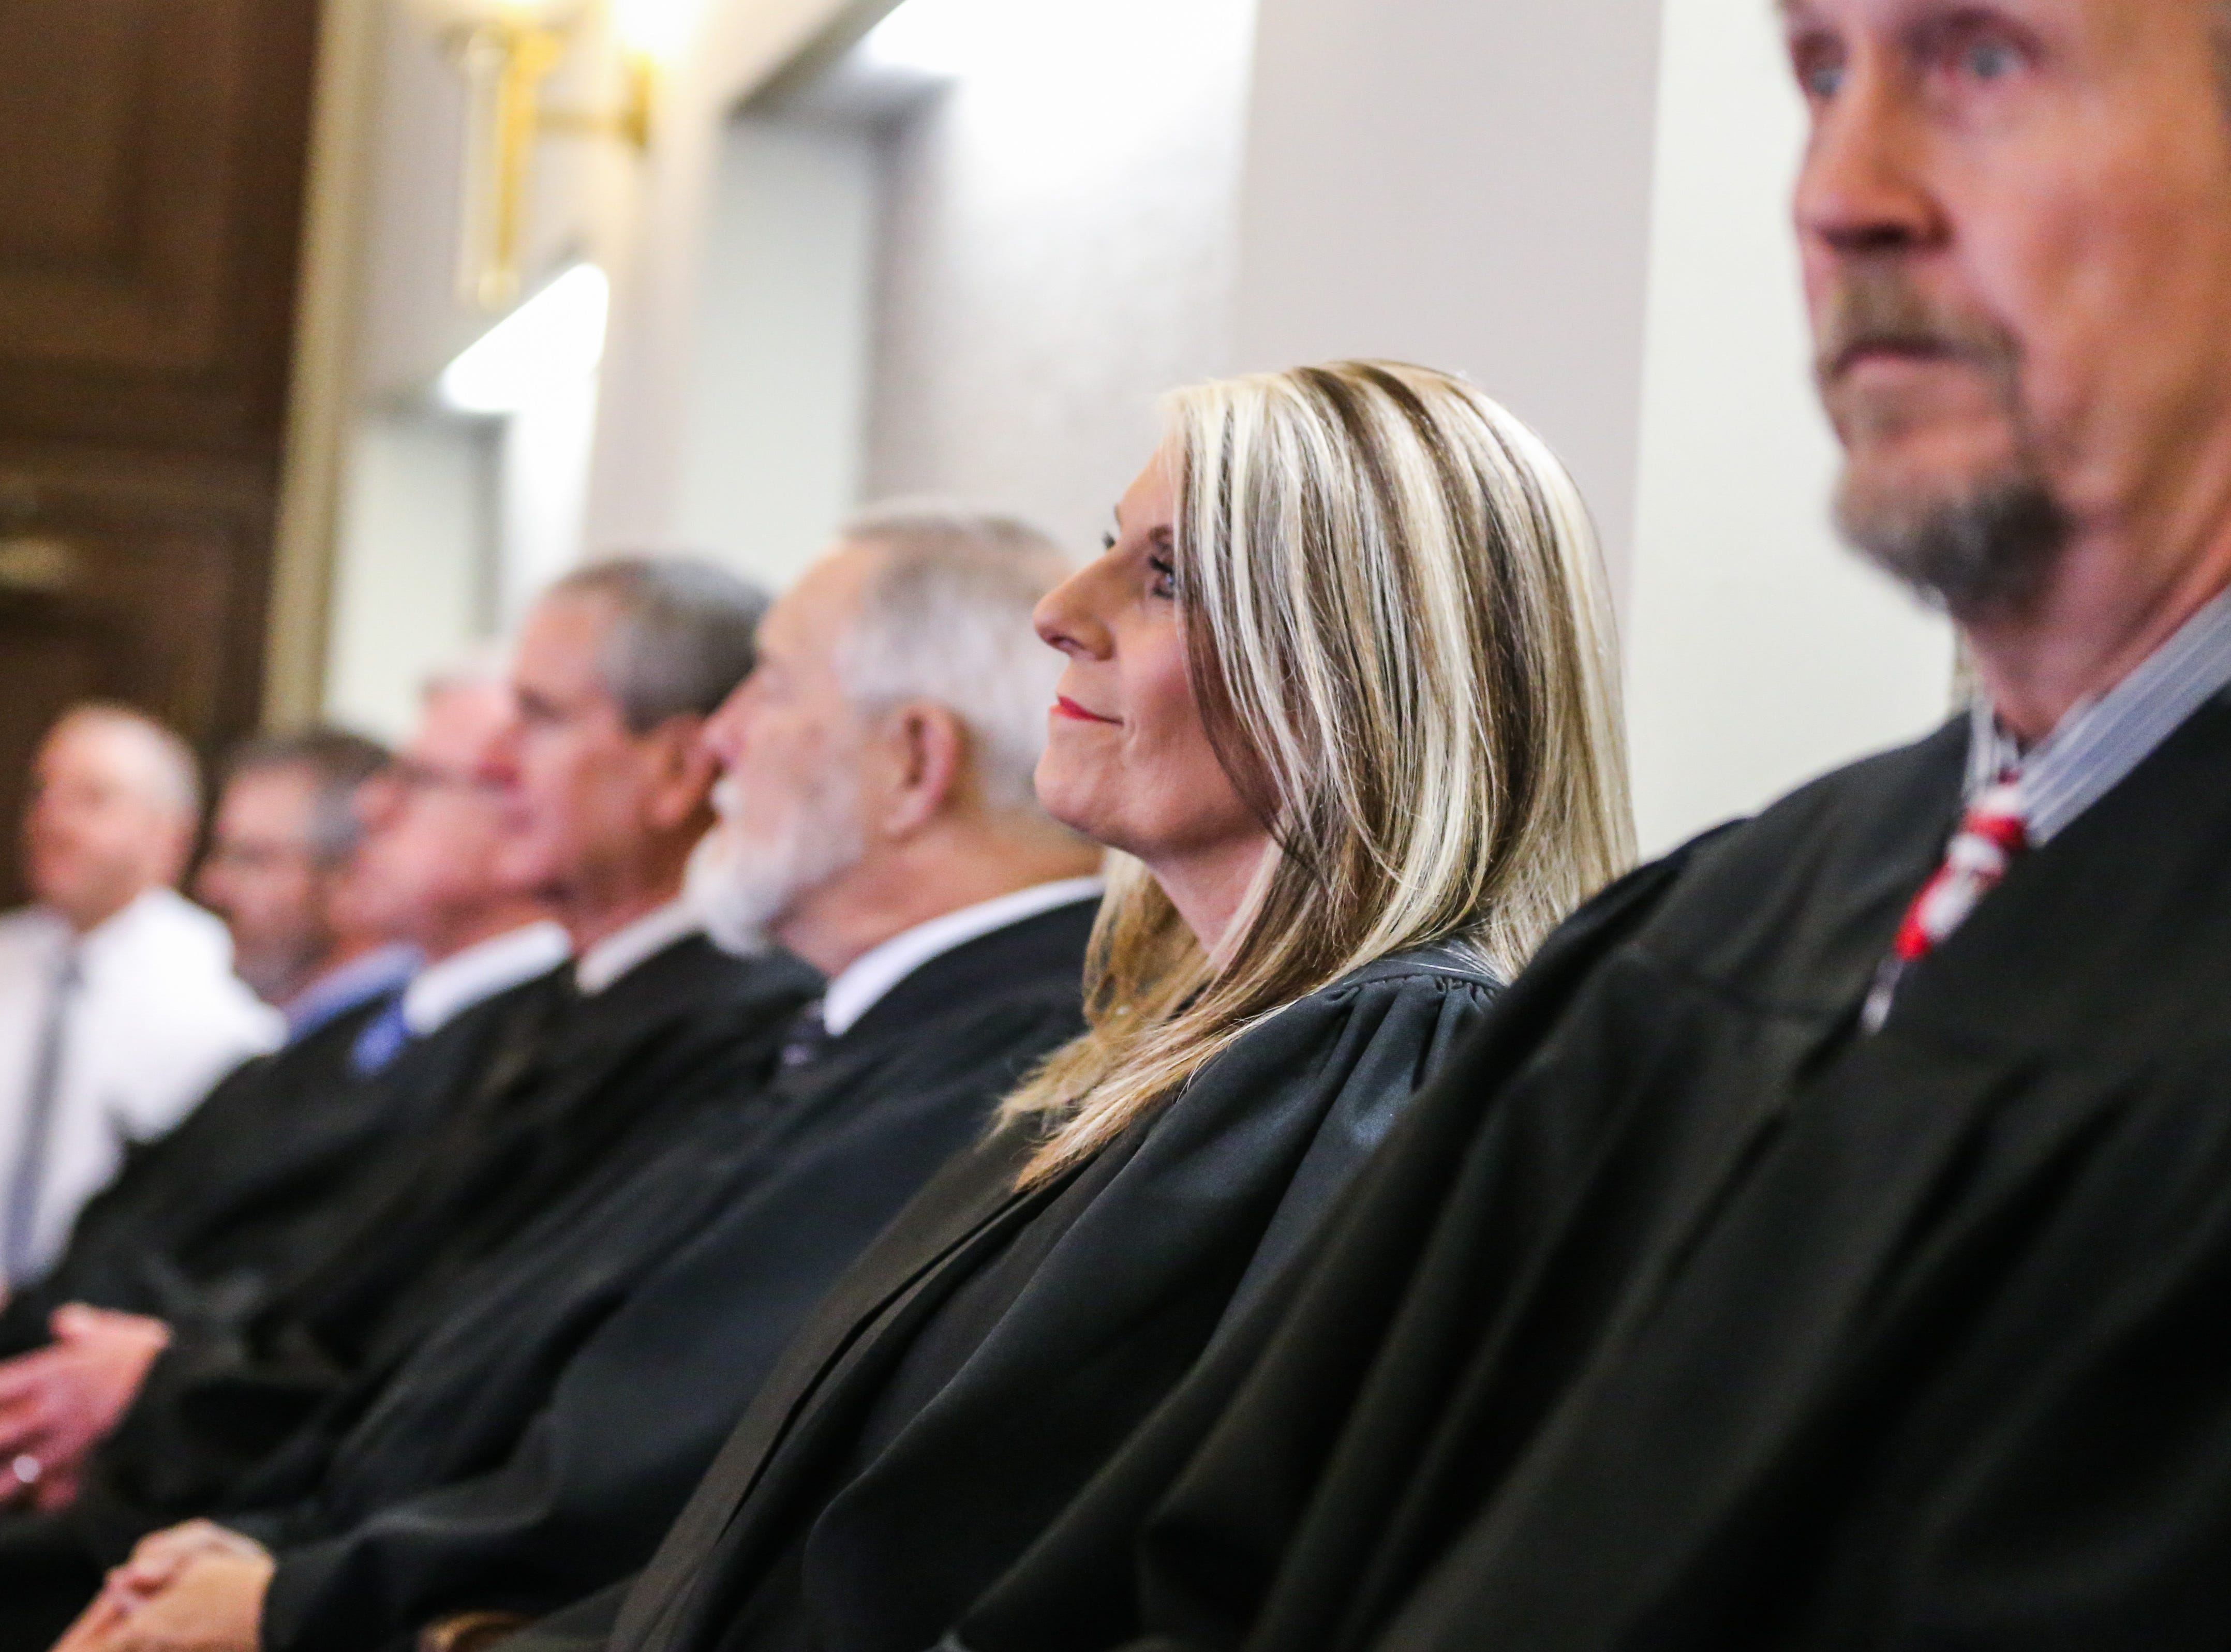 Judges look on during the ceremony to swear in Carmen Dusek as 51st District Court judge Friday, Dec. 14, 2018, at Tom Green Courthouse.